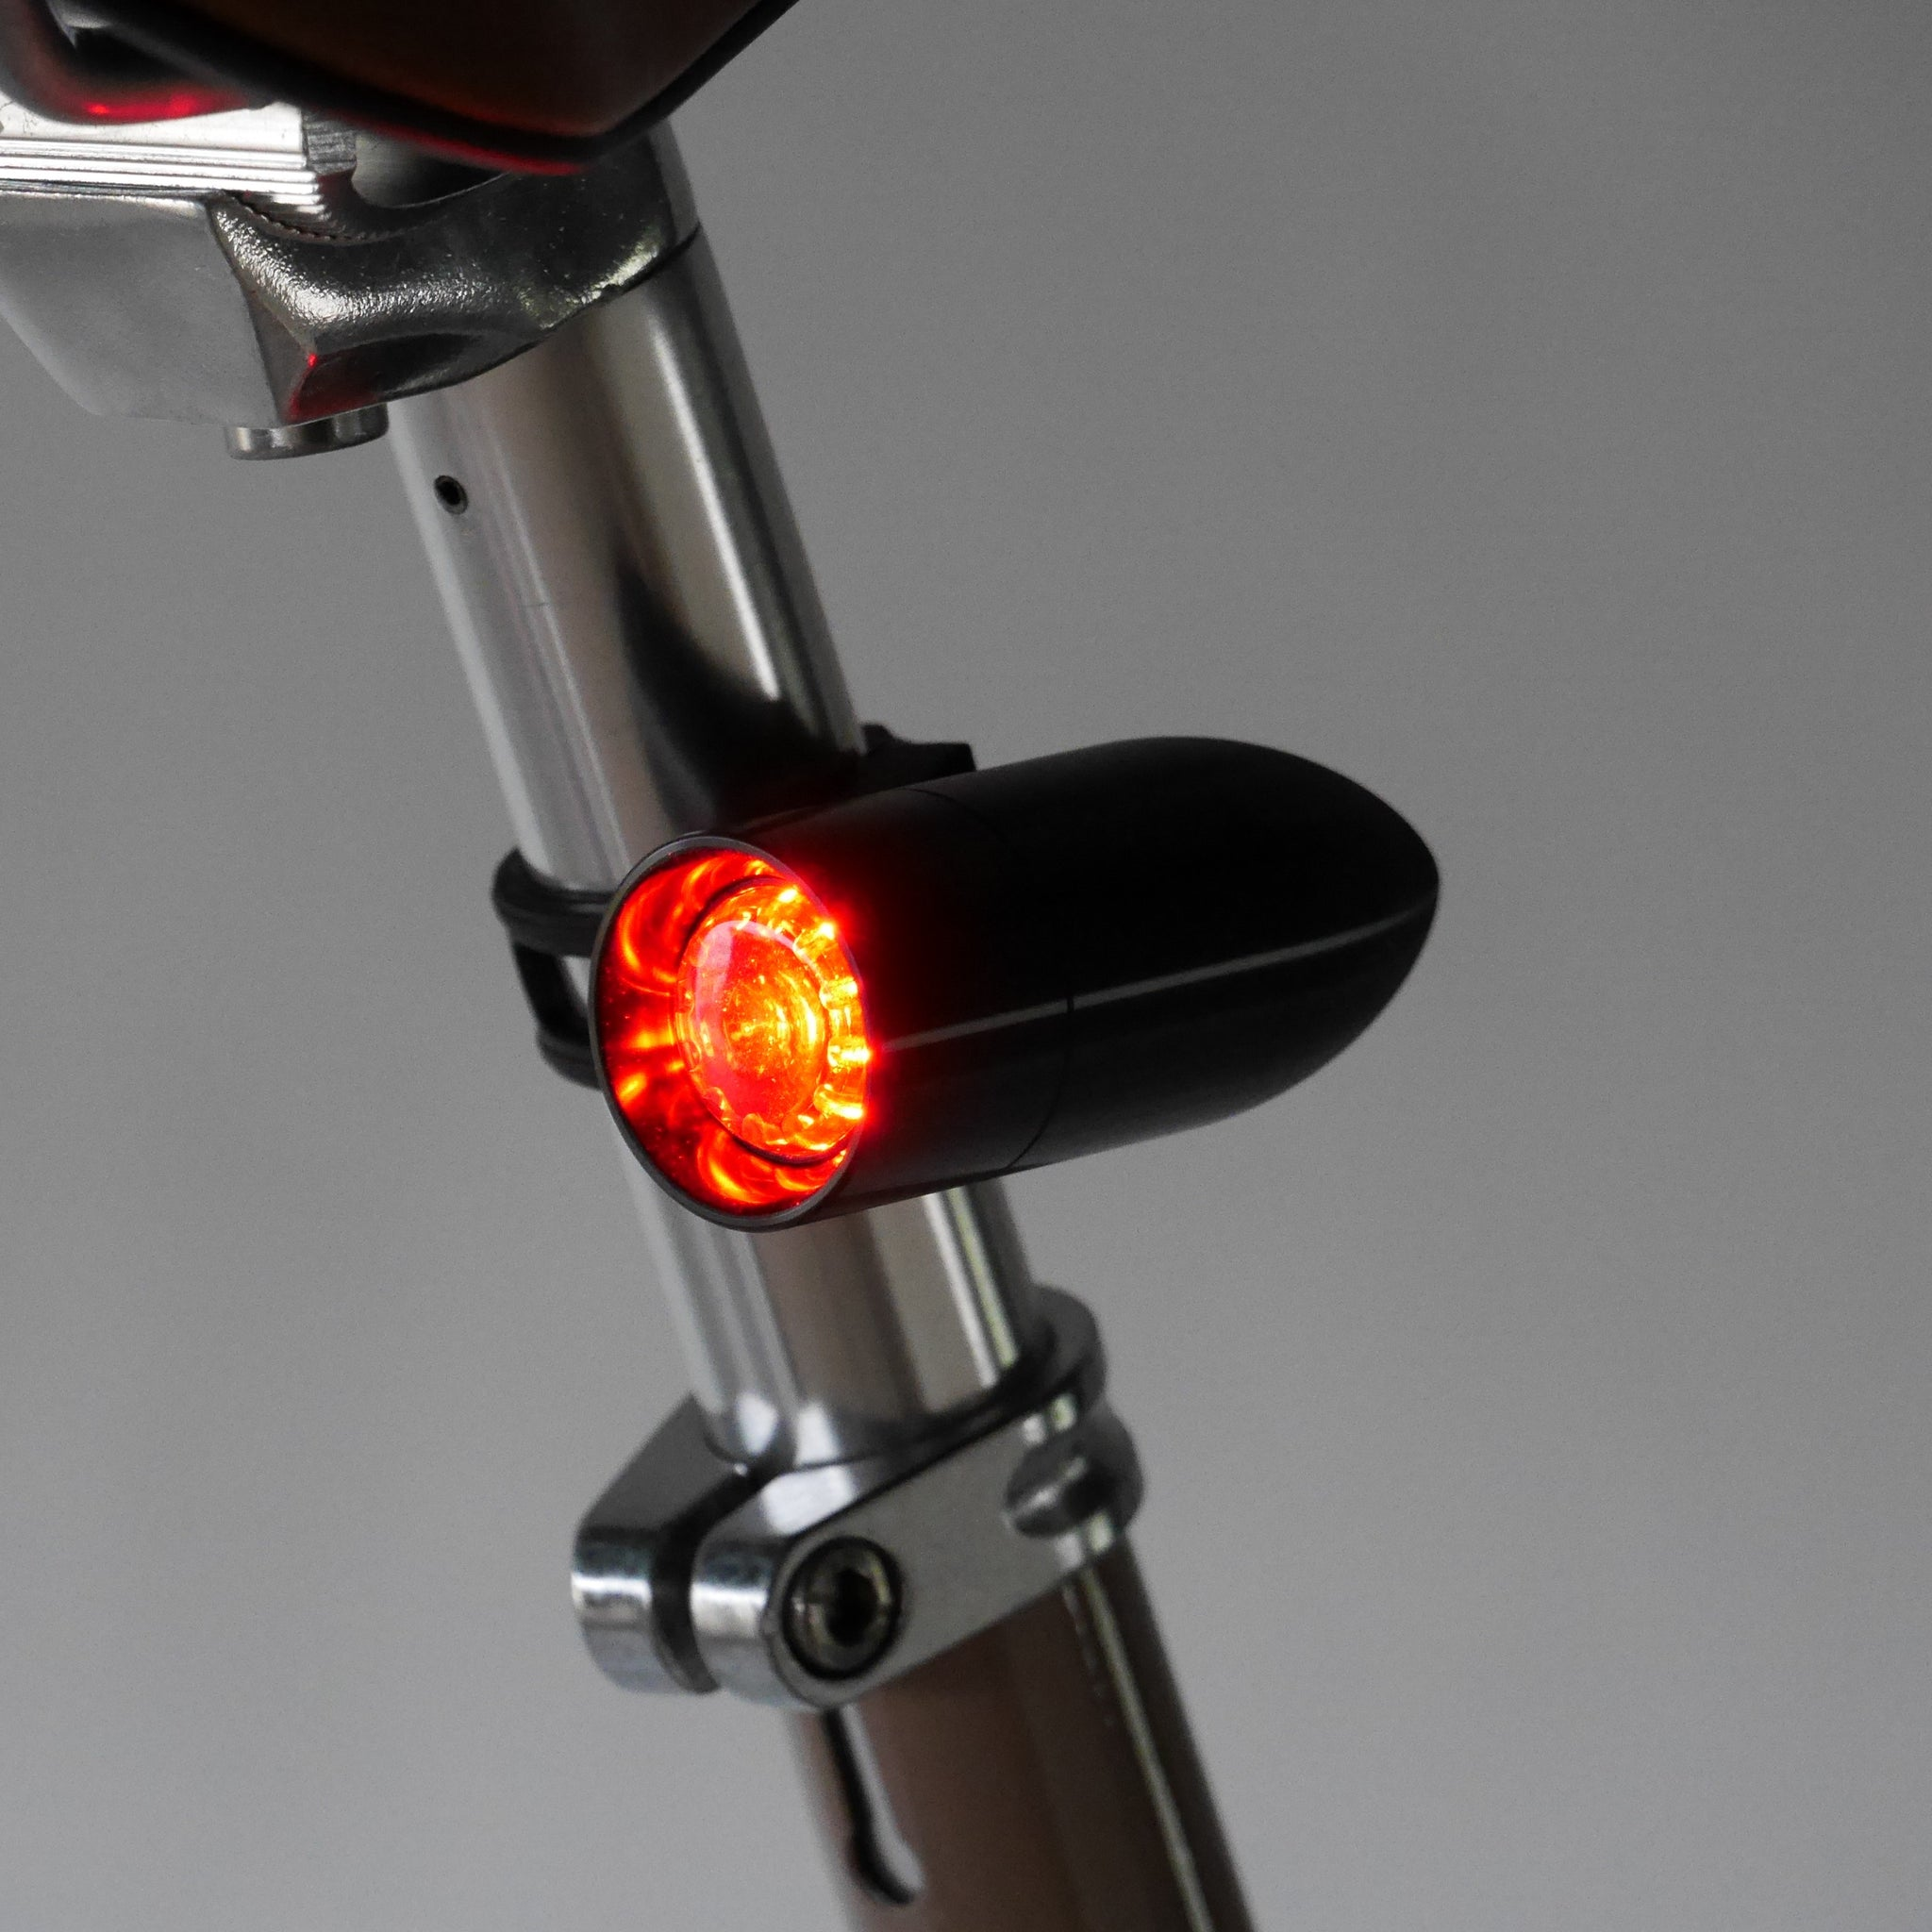 Mount Bent Set Silver NEW RINDOW BULLET LIGHTING Bicycle tail light Stay